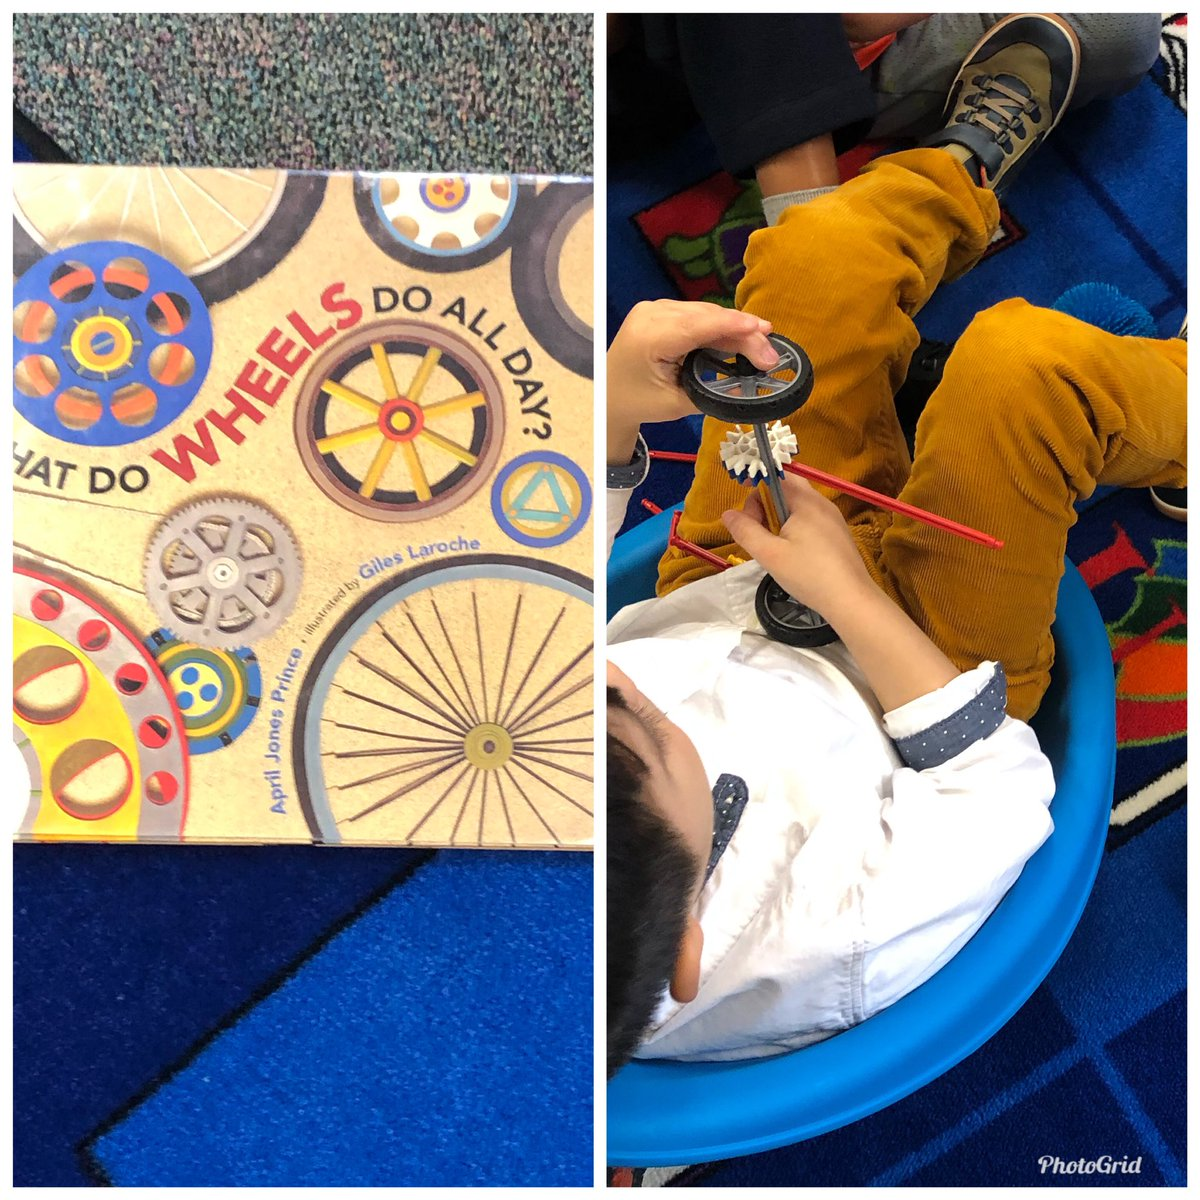 These PreK are demonstrating what wheels do all day.  Books and building  in the library. <a target='_blank' href='http://search.twitter.com/search?q=TeamBarcroft'><a target='_blank' href='https://twitter.com/hashtag/TeamBarcroft?src=hash'>#TeamBarcroft</a></a> <a target='_blank' href='http://twitter.com/msarroyotweets'>@msarroyotweets</a> <a target='_blank' href='http://twitter.com/GabyRivasAPS'>@GabyRivasAPS</a> <a target='_blank' href='http://twitter.com/BarcroftEagles'>@BarcroftEagles</a> <a target='_blank' href='http://twitter.com/MsBouton'>@MsBouton</a> <a target='_blank' href='http://twitter.com/APS_EarlyChild'>@APS_EarlyChild</a> <a target='_blank' href='https://t.co/POrZuaUY5G'>https://t.co/POrZuaUY5G</a>